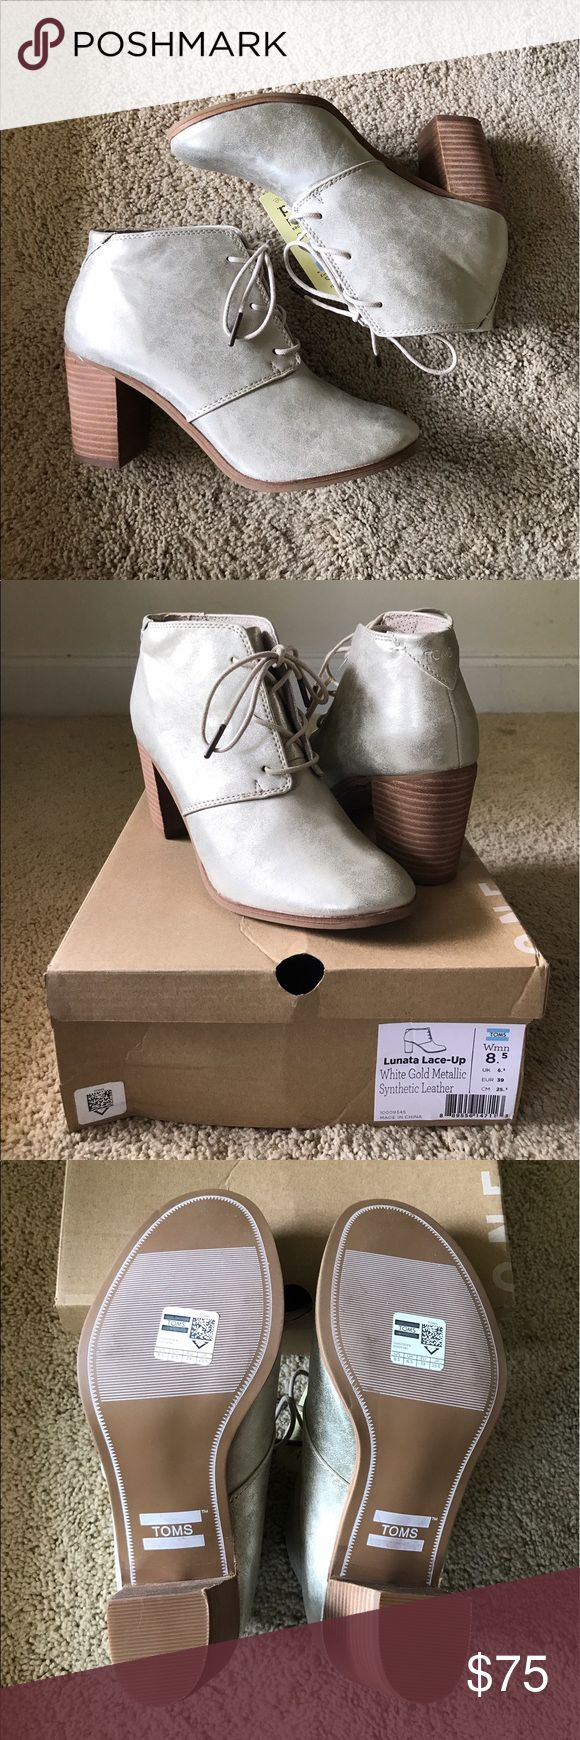 NWT TOMS Lunata Lace-Up White Gold Booties BRAND NEW, PERFECT CONDITION!! Only worn to try on. White Gold Metallic Synthetic Leather. True to size. Very cute and comfortable. Comes in original box and toms bag and sticker. TOMS Shoes Ankle Boots & Booties